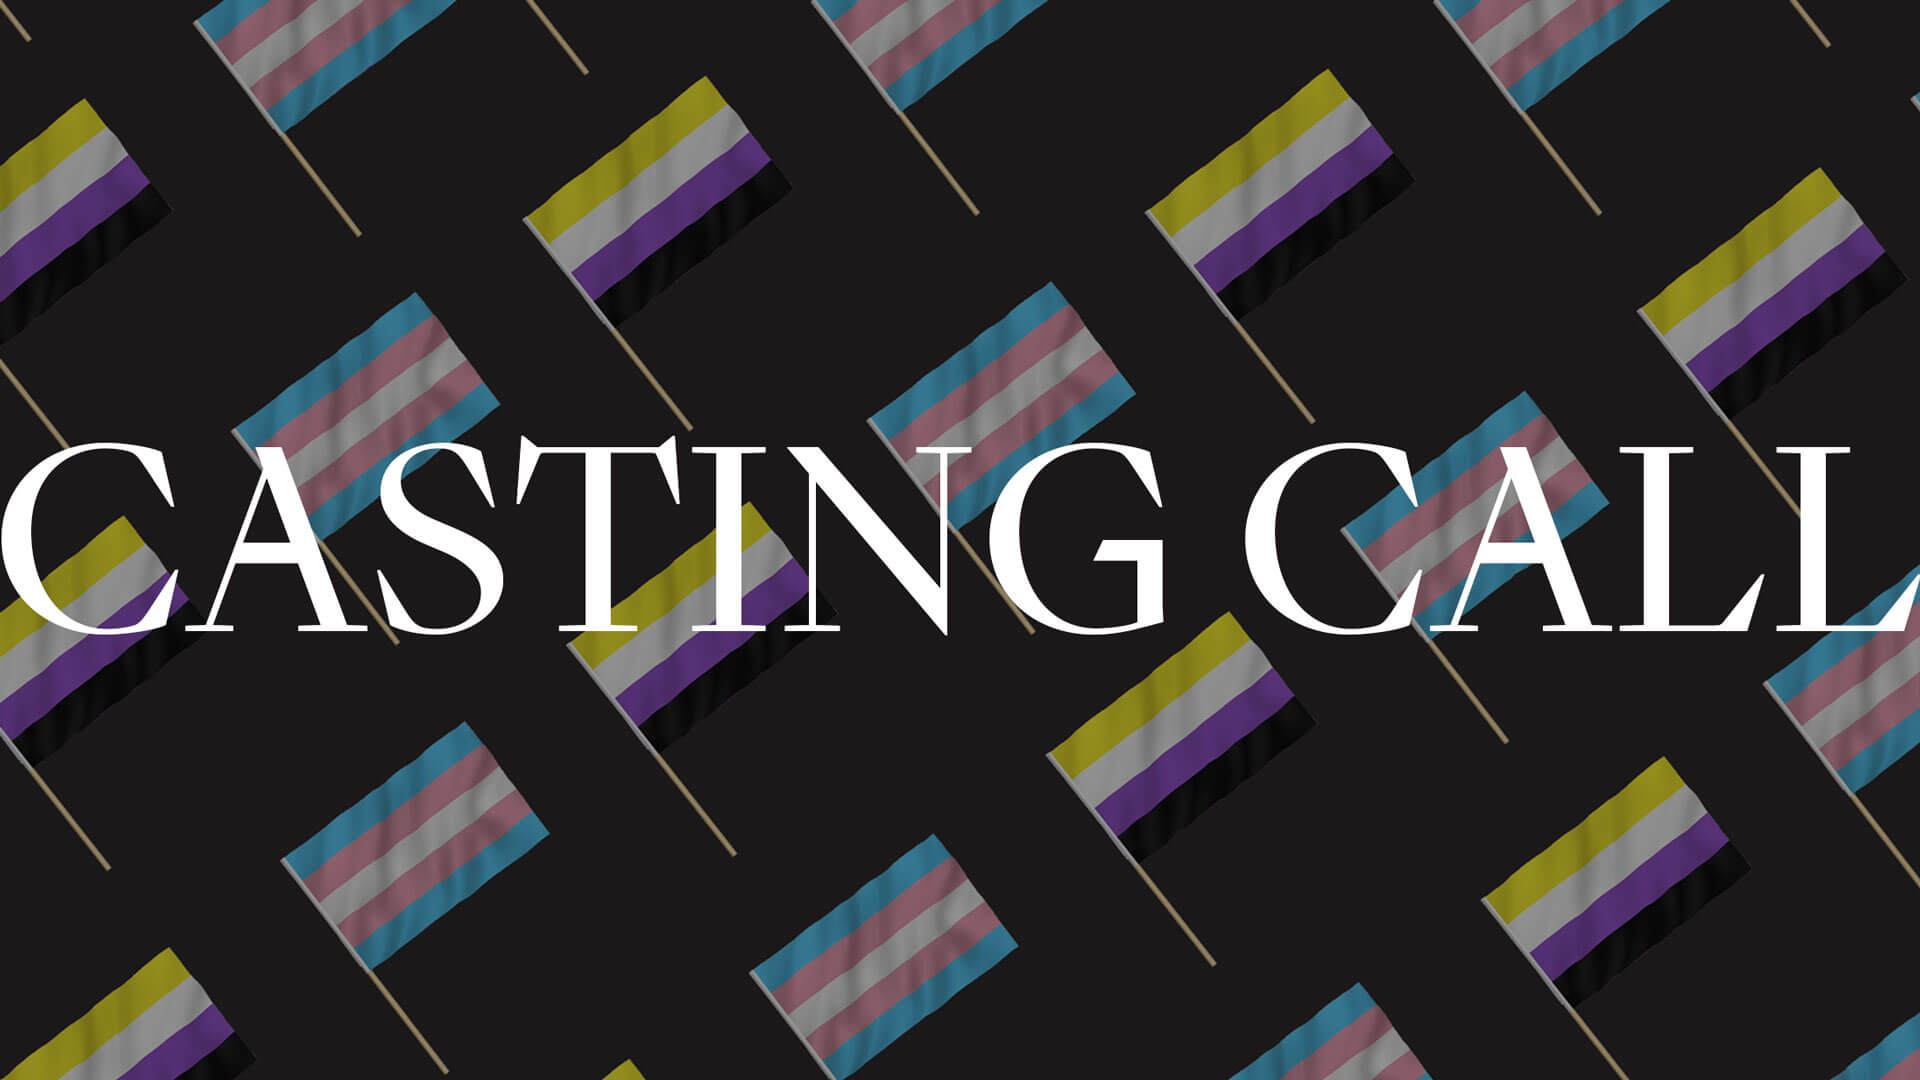 Casting Call non-binary and trans flag